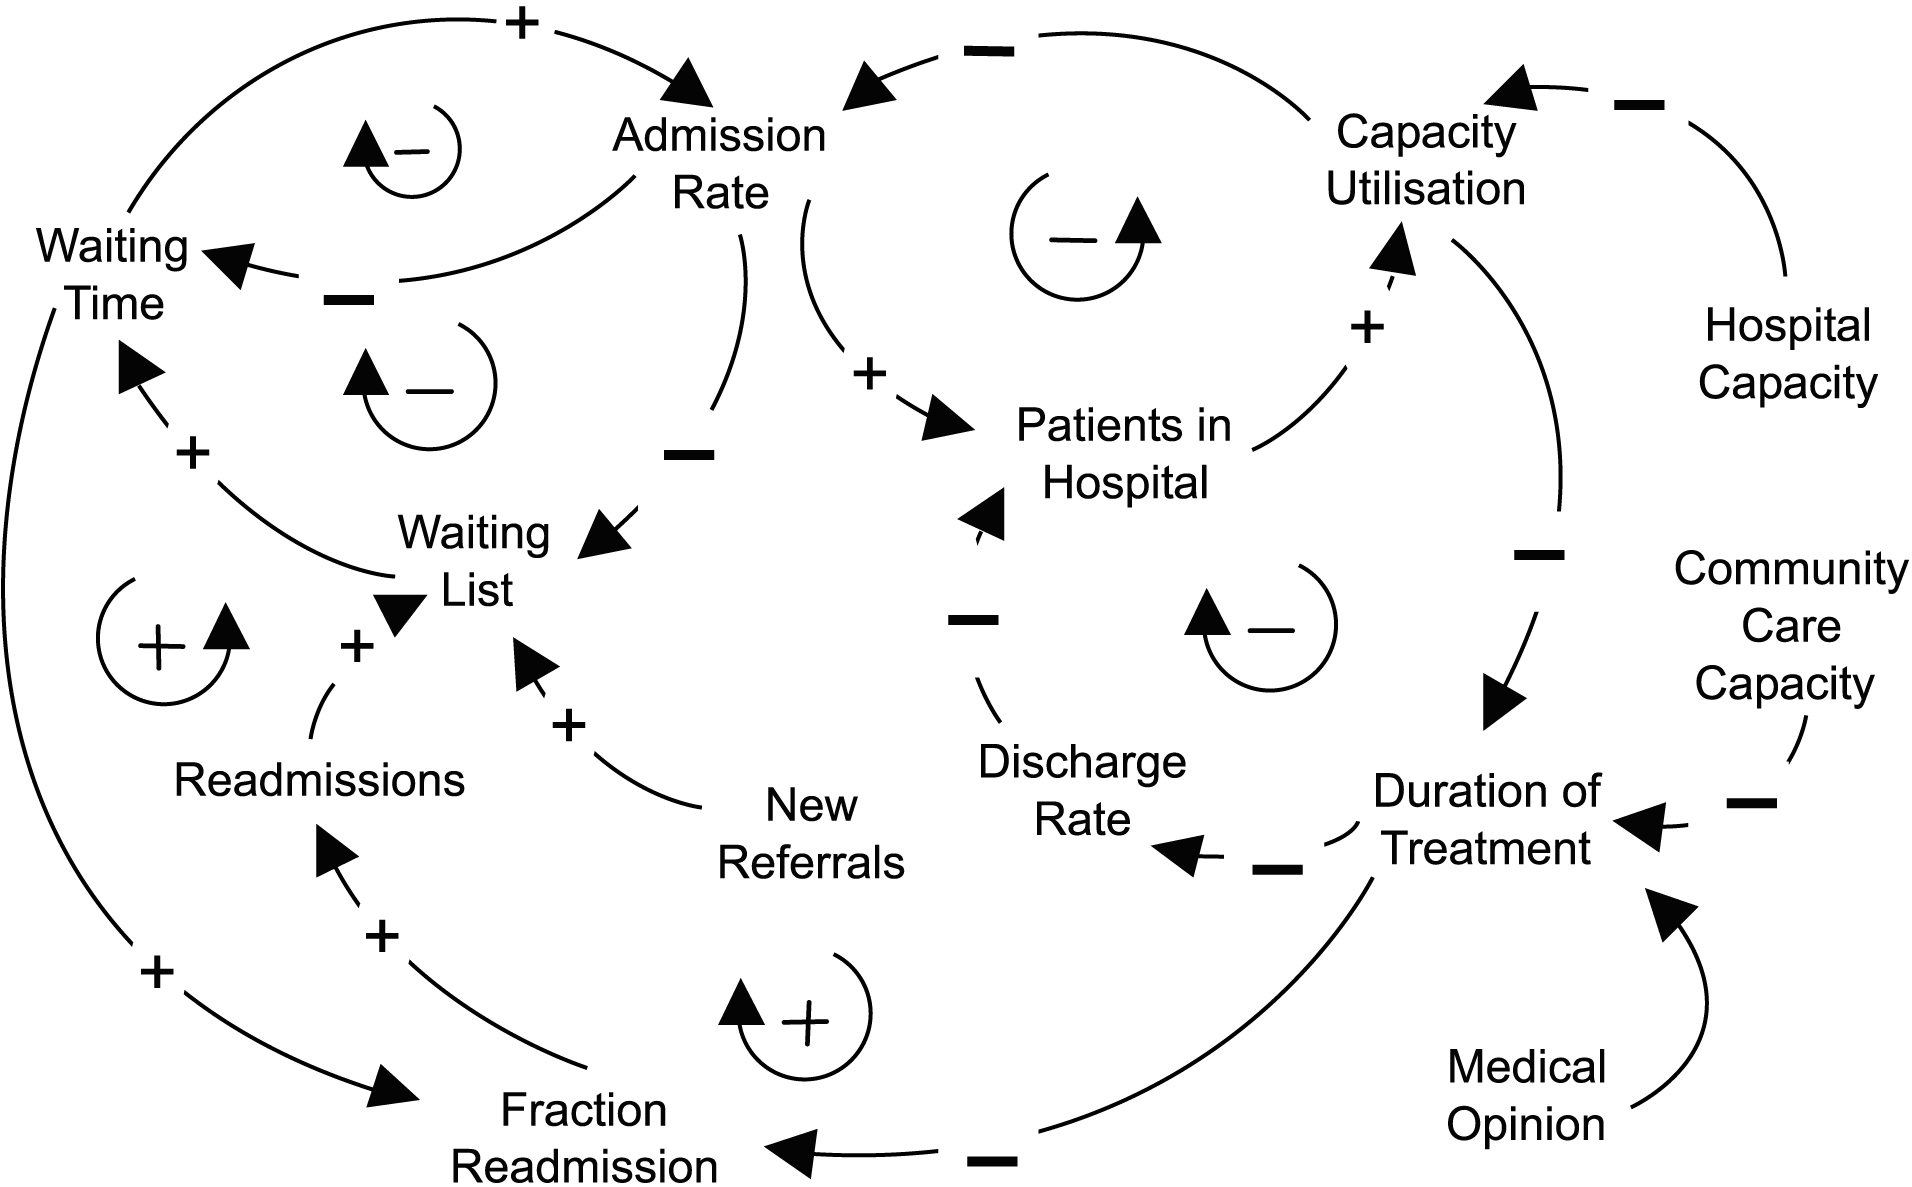 causal loop diagram healthcare delivery marketing process systems engineering kaizen  [ 1912 x 1187 Pixel ]